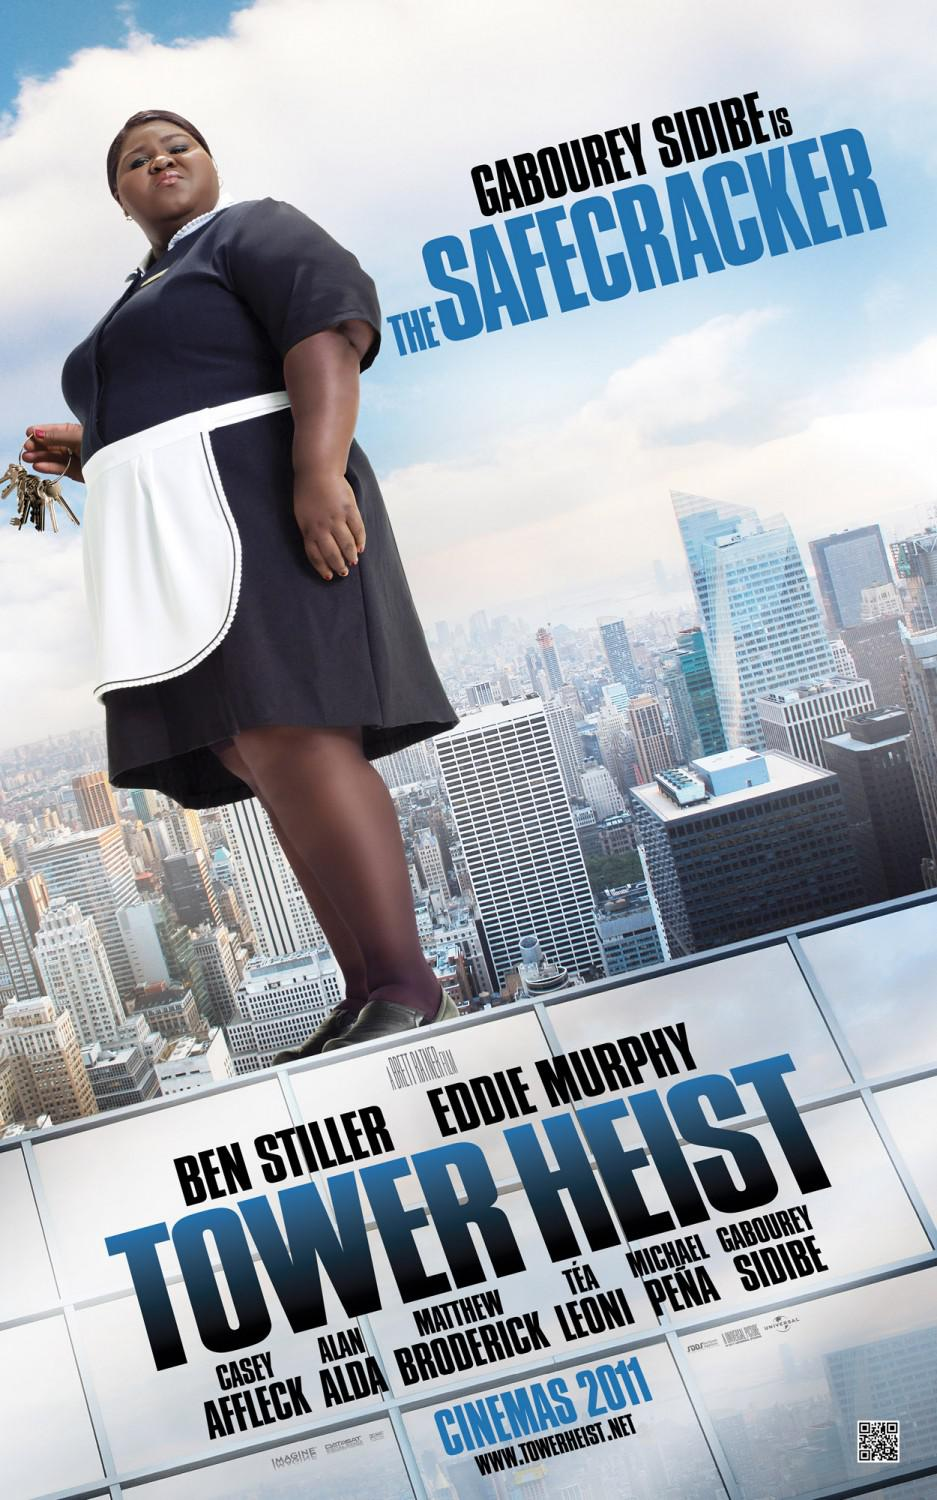 Tower heist - Téa Leoni - Gabourey SidiBe - the Safecracker